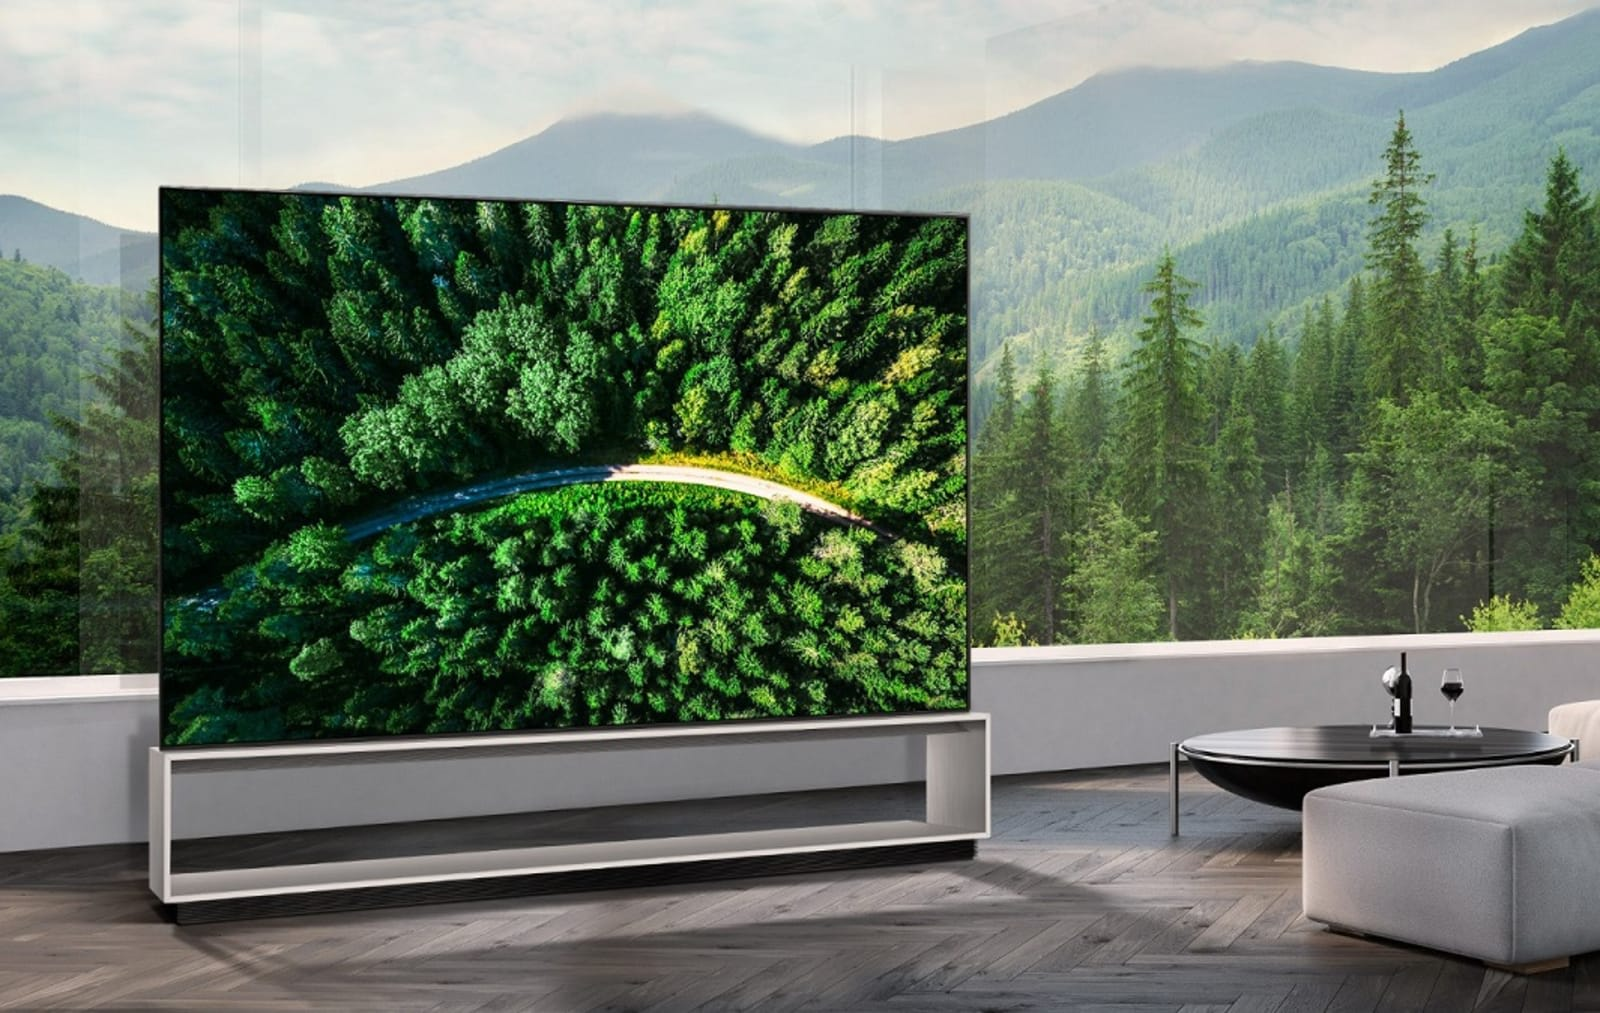 Samsung S Qled 8k Tv Will Be One Of The First Certified By The 8k Association Engadget